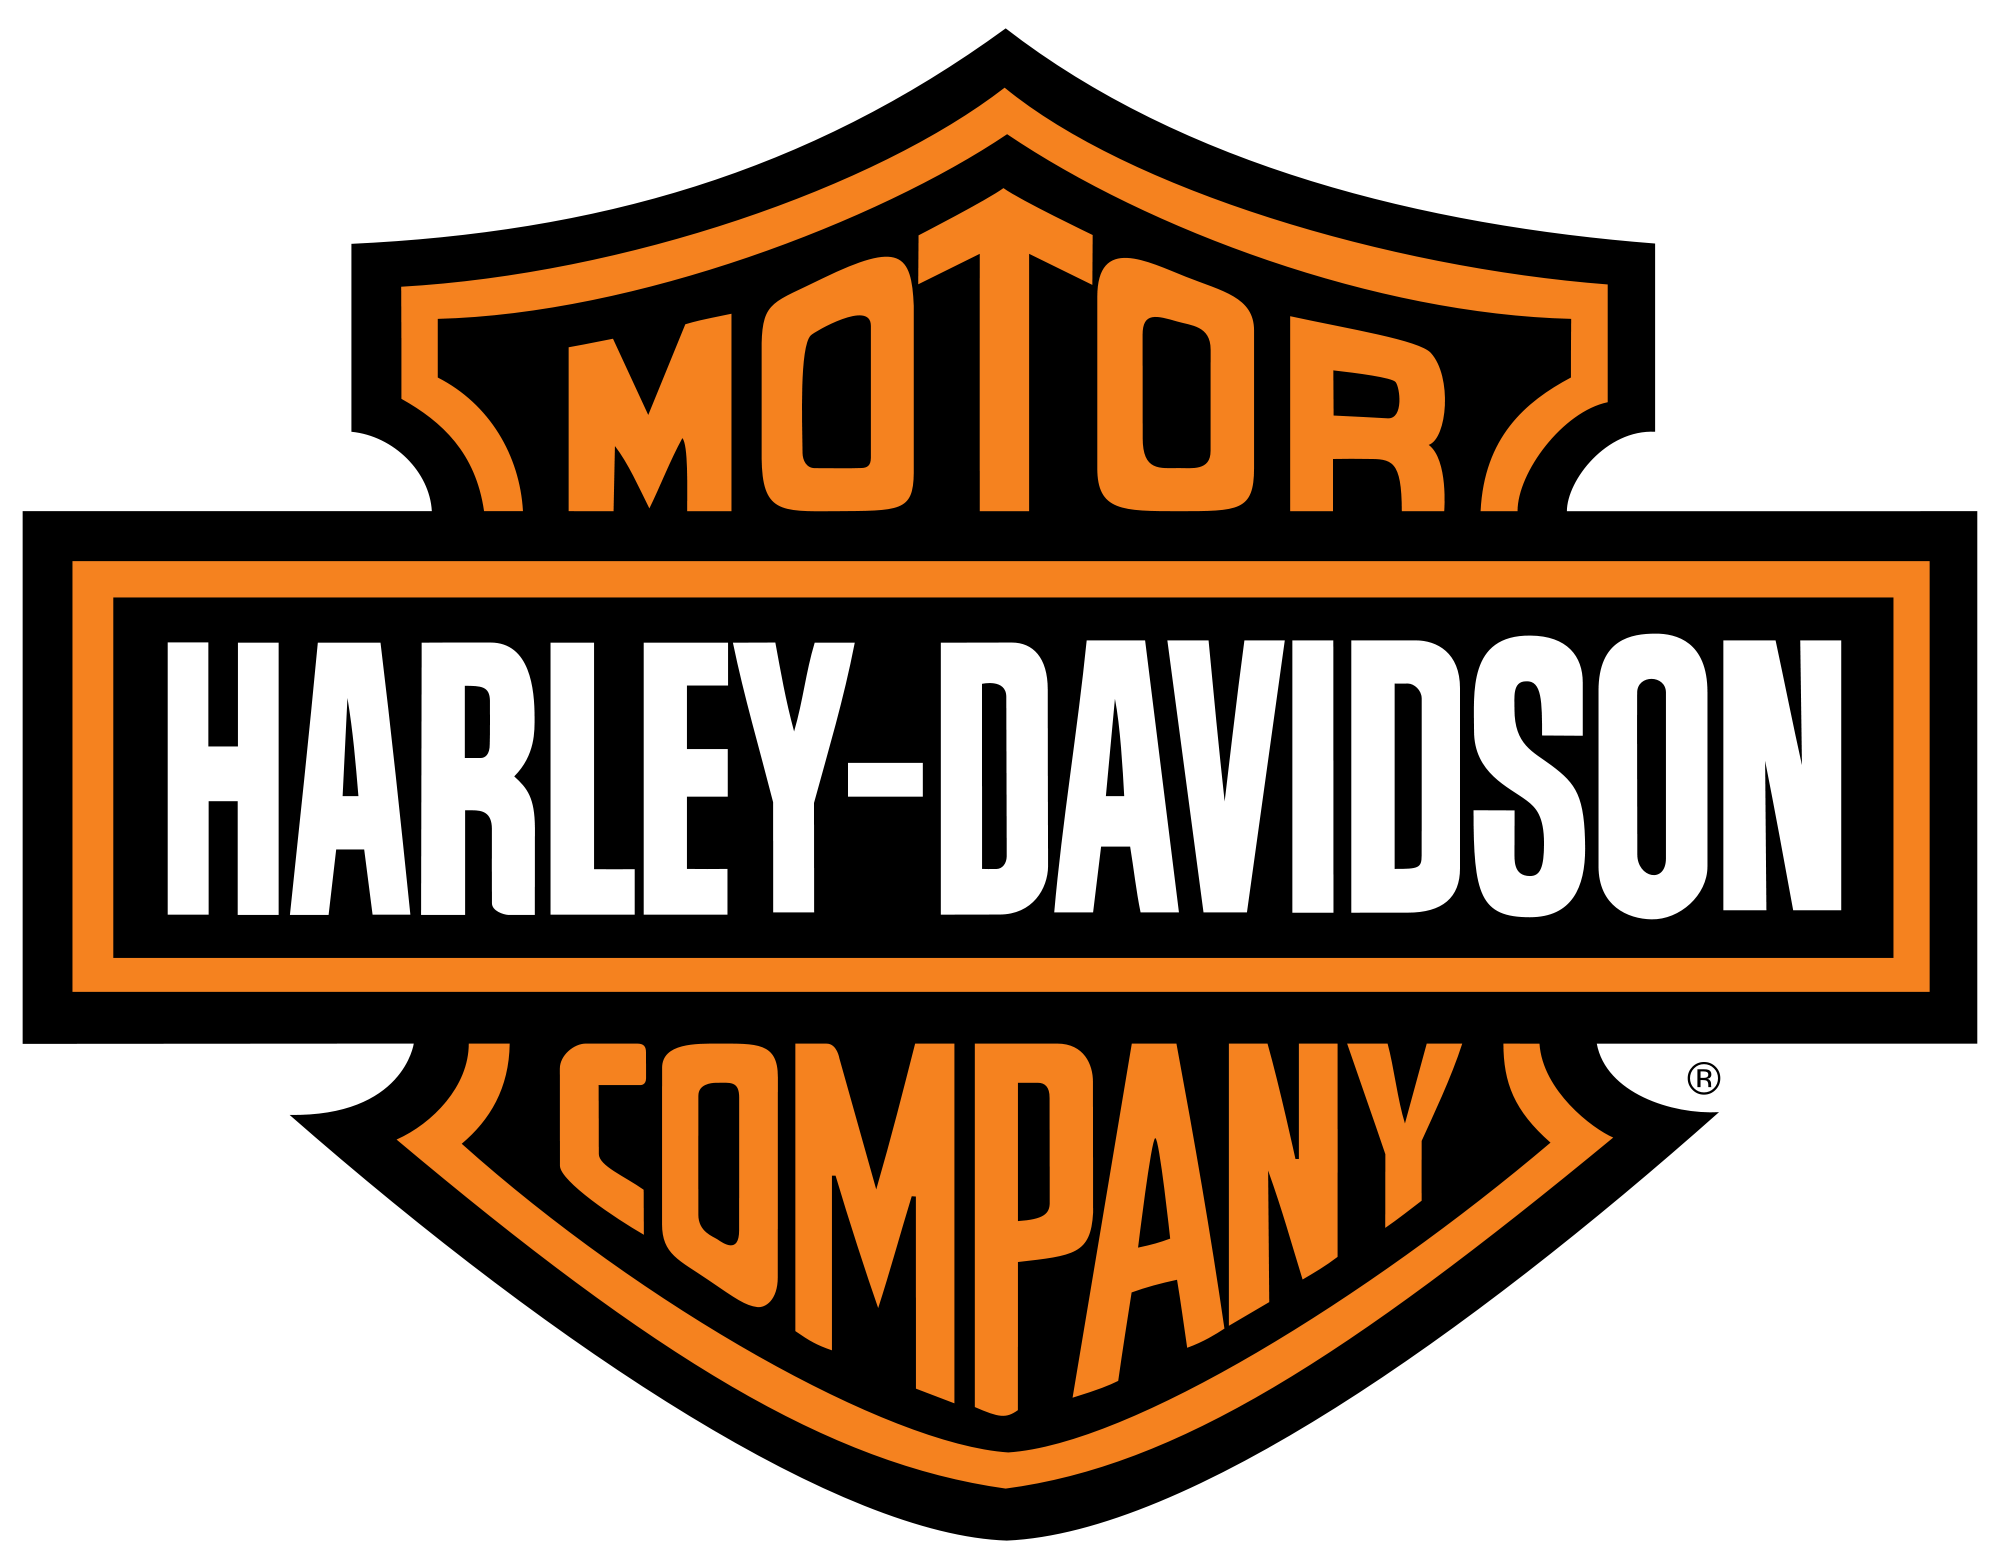 Harley davidson clipart shield. For free download and